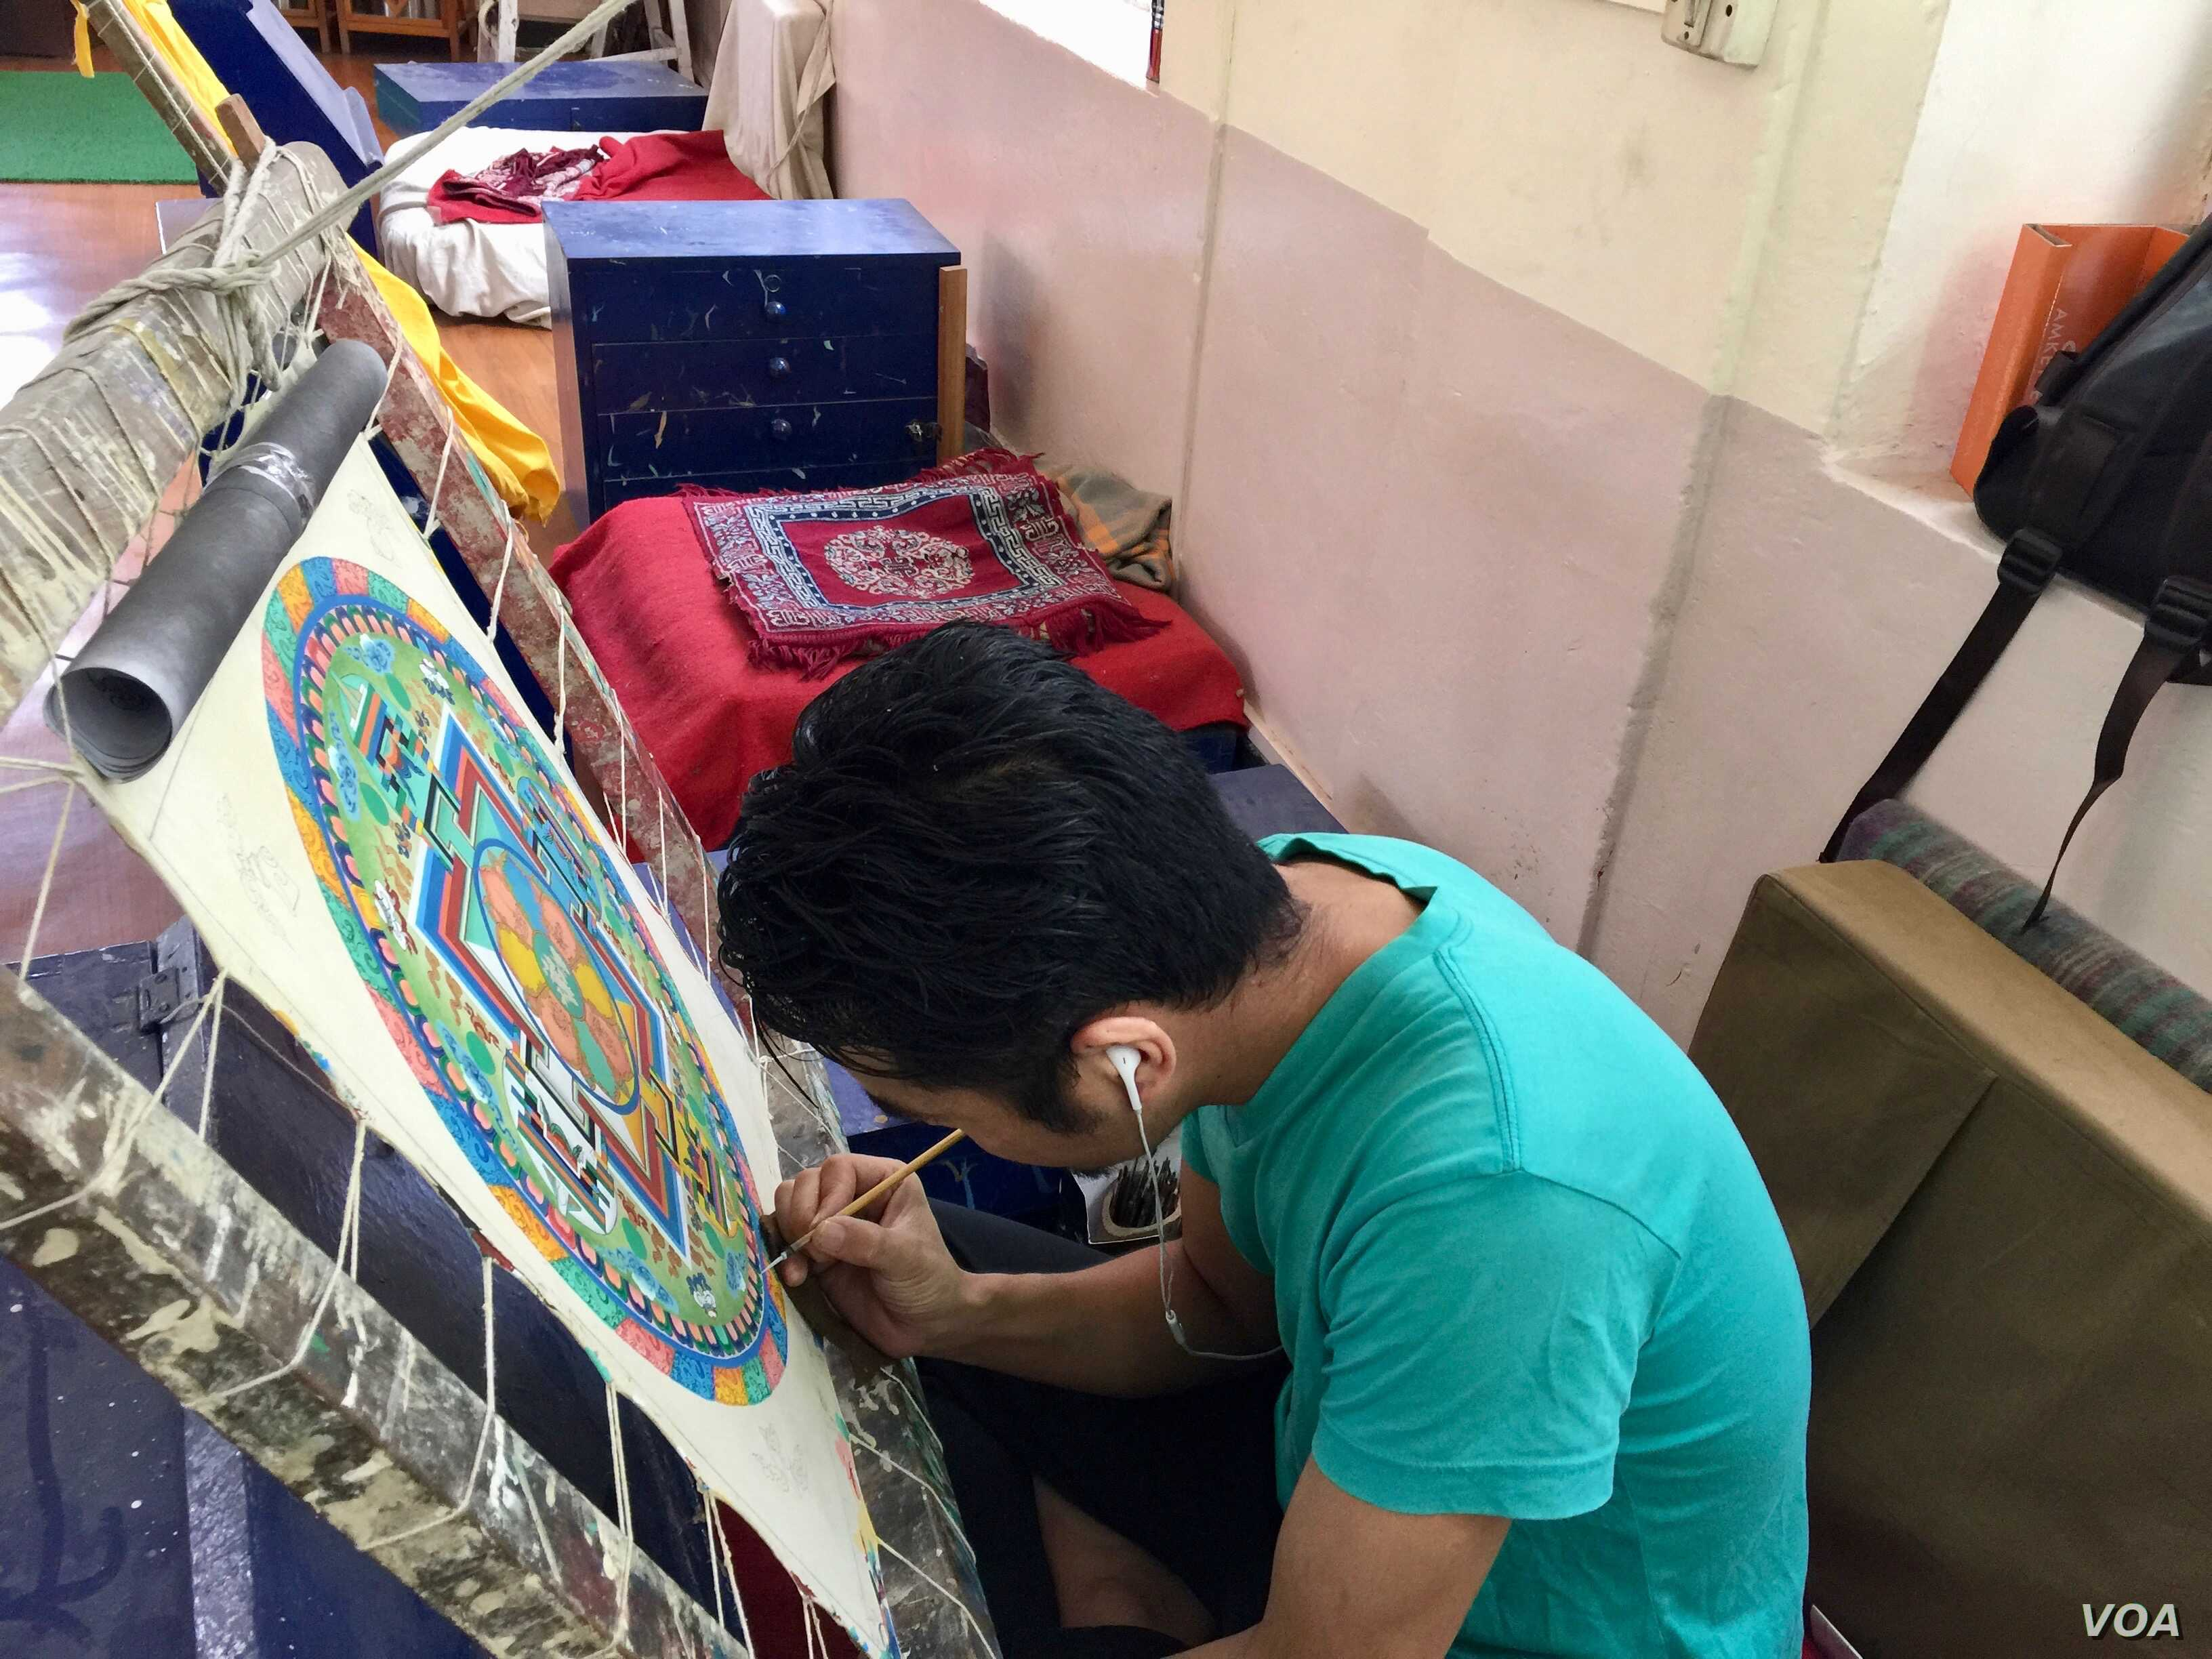 Young people in Dharamshala learn traditional Tibetan painting at the Norbulingka Institute in Dharamshala (8207) but fewer are coming these days.